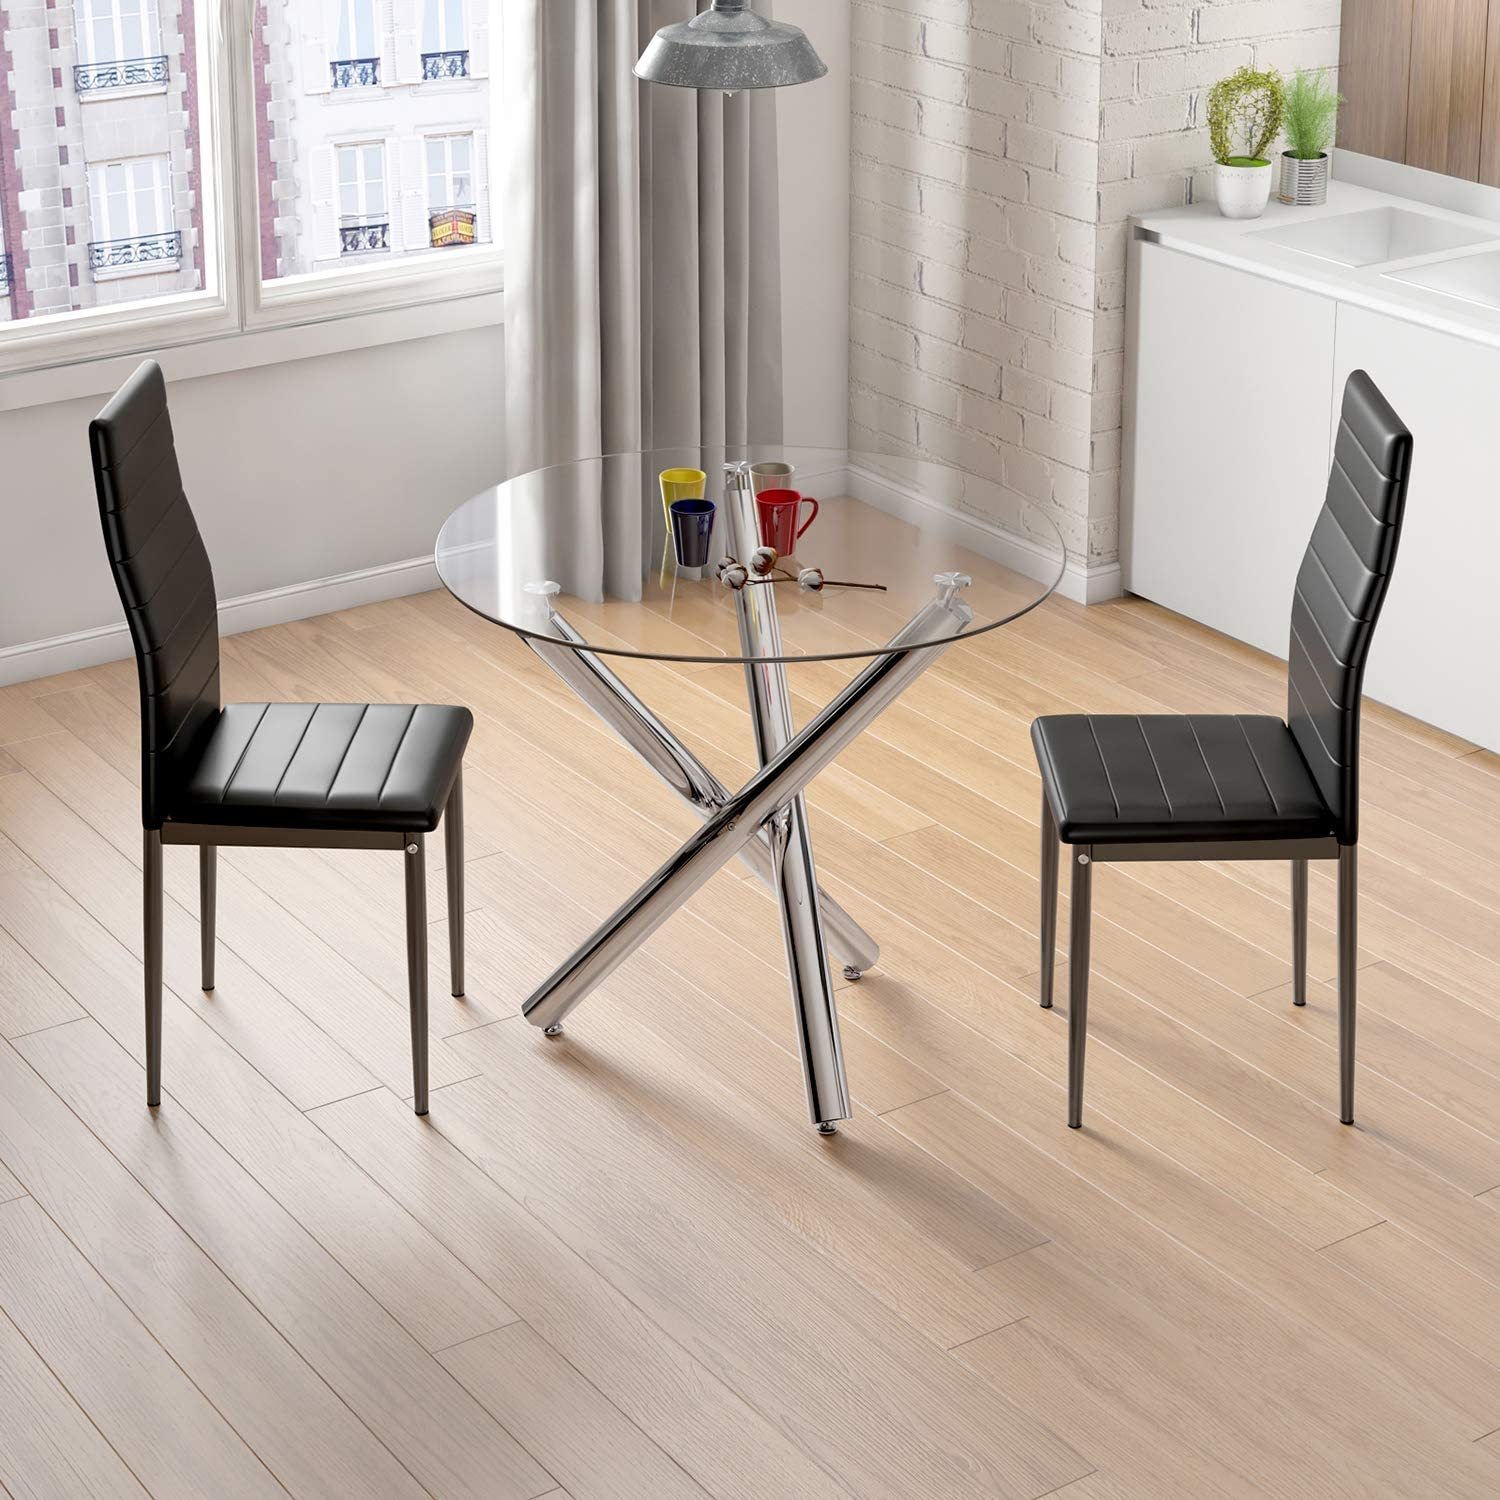 Jooli H Dining Set 2 Seater, Glass Dining Kitchen Table and 2 Faux PU Leather Chairs Modern Dining Room Furniture Set (Round Table+2*Black Chairs) Round Table+2*black Chairs